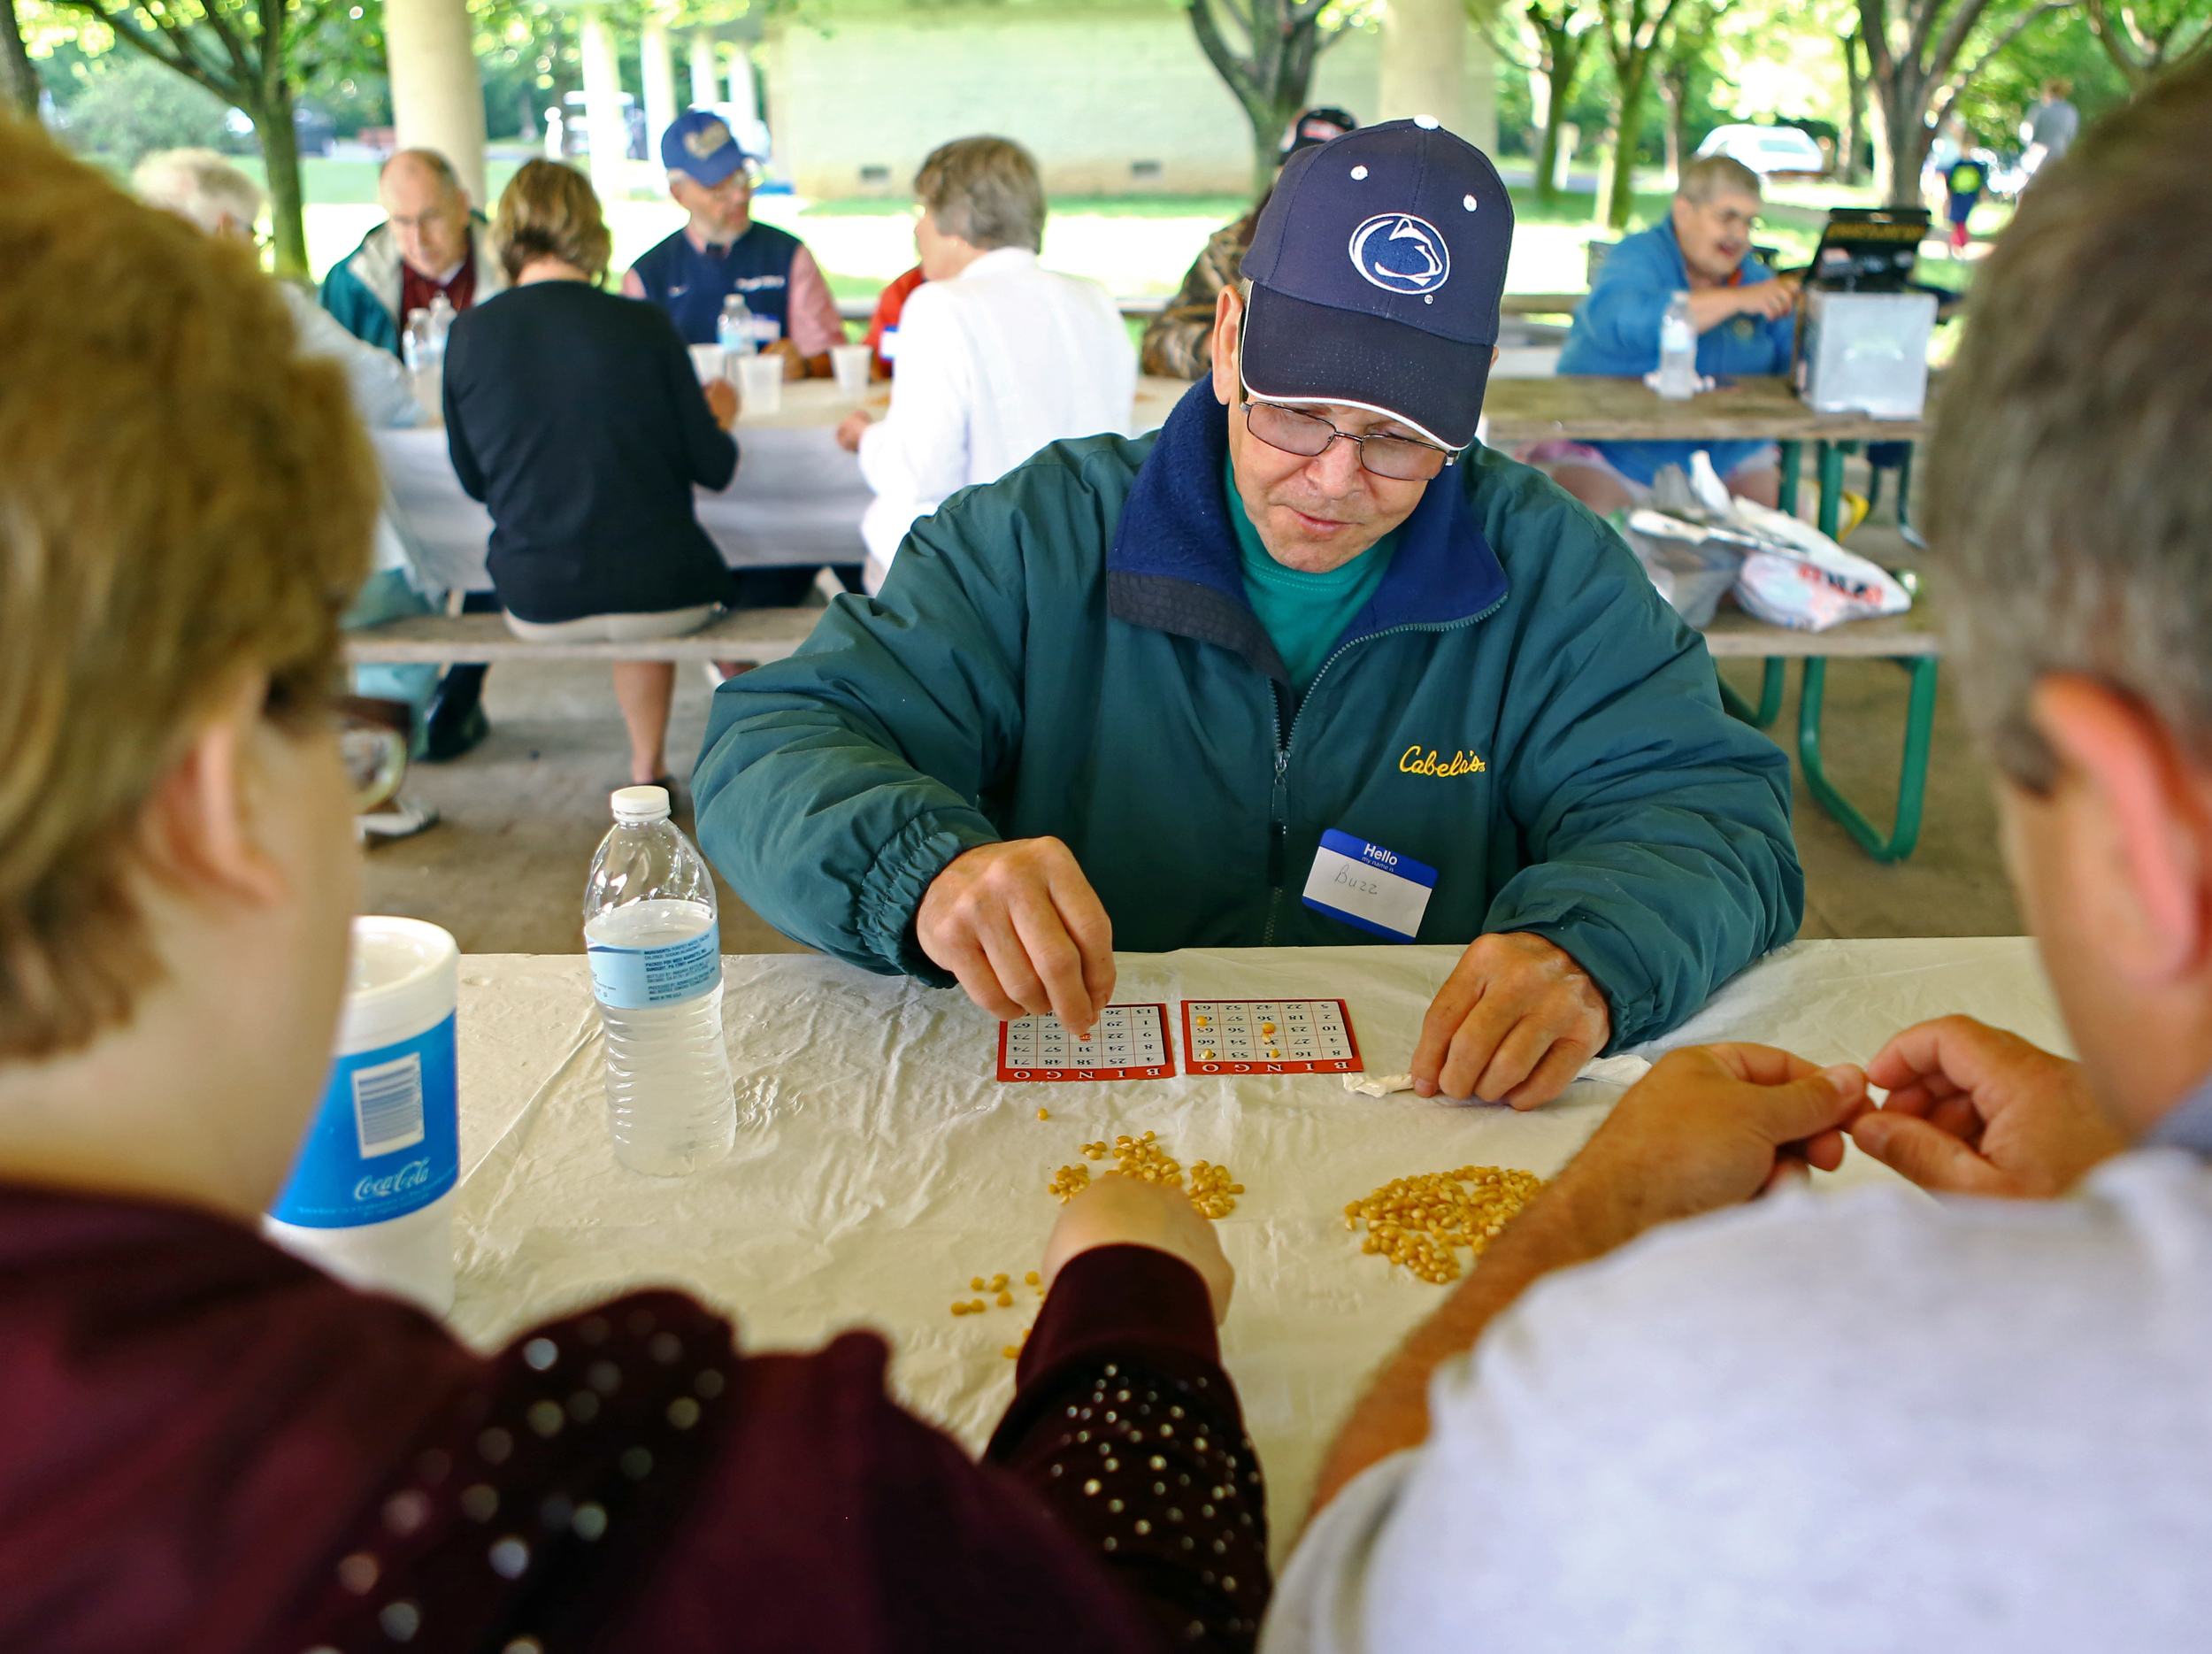 Cancer survivor Buzz McGee places popcorn kernels on on a bingo card during the Cancer Survivors Association picnic held at Tom Tudek Memorial Park on Sunday, June 5, 2016. McGee has been free of non-hodgkin's lymphoma for five years.